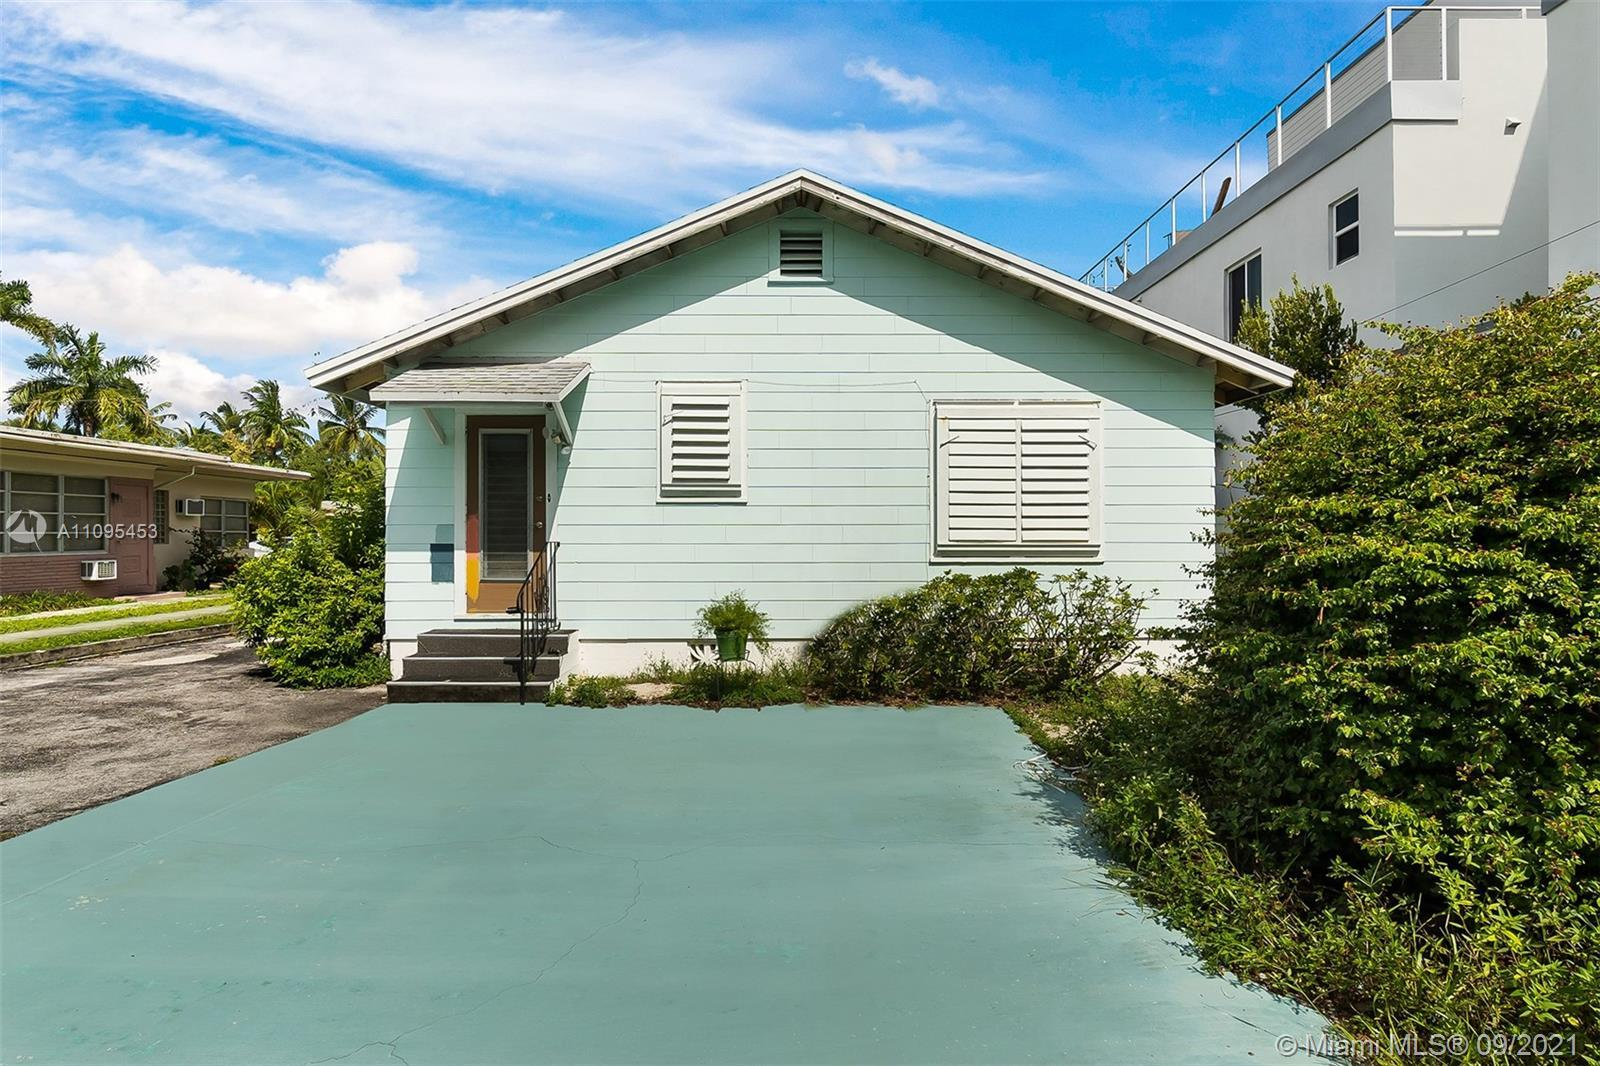 Make all your dreams come true in this charming Victoria Park home! Renovate or restore the 2/1 fron